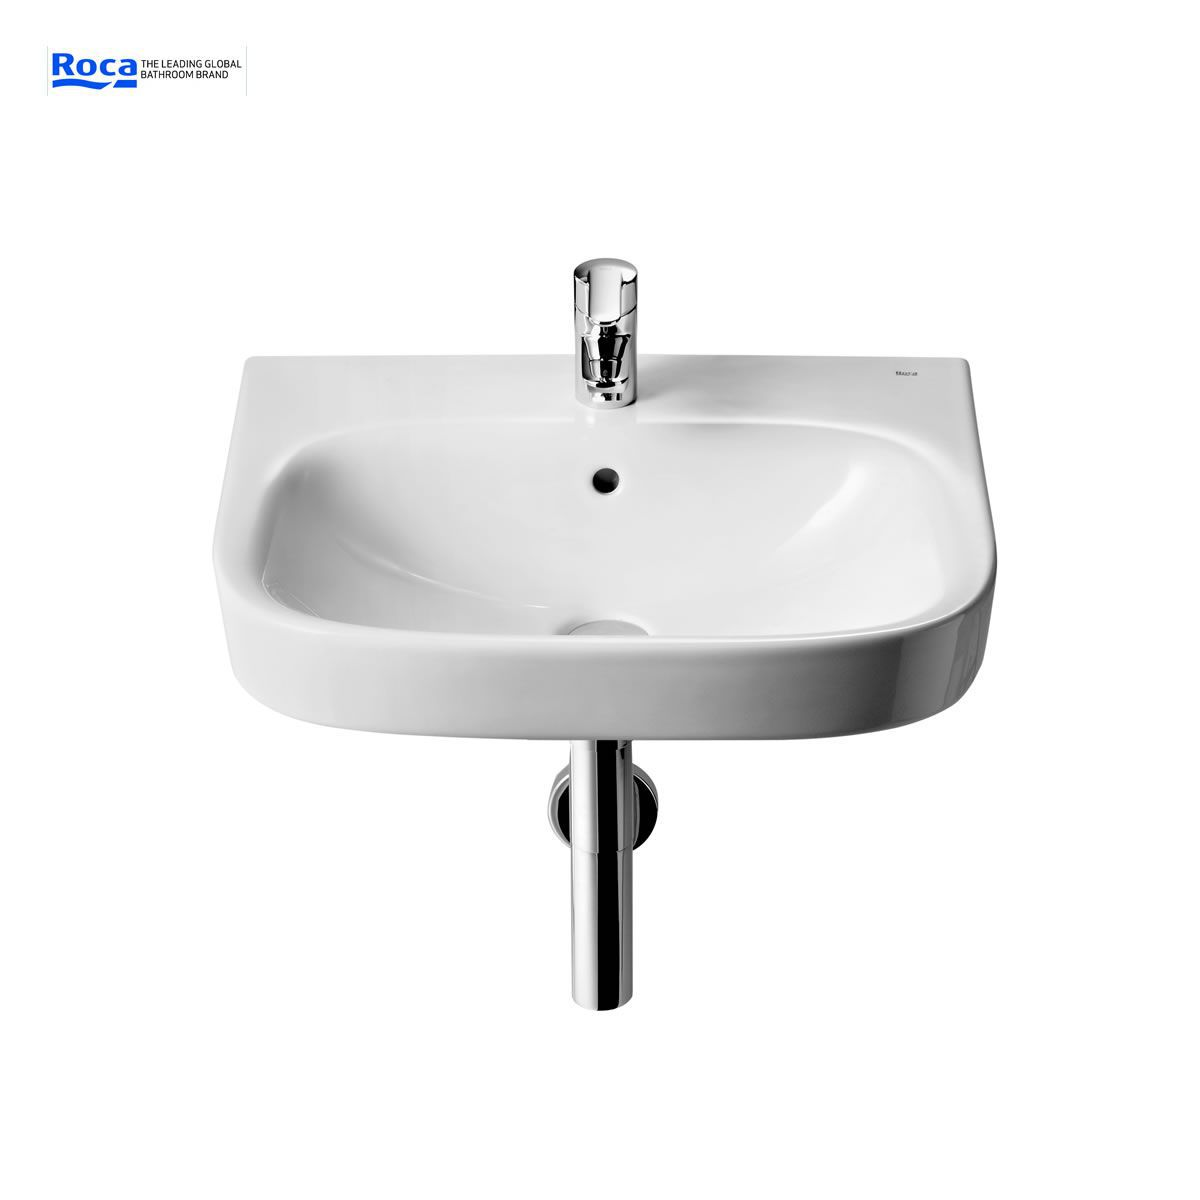 Roca Bathroom Accessories Roca Debba Bathroom Basin Uk Bathrooms